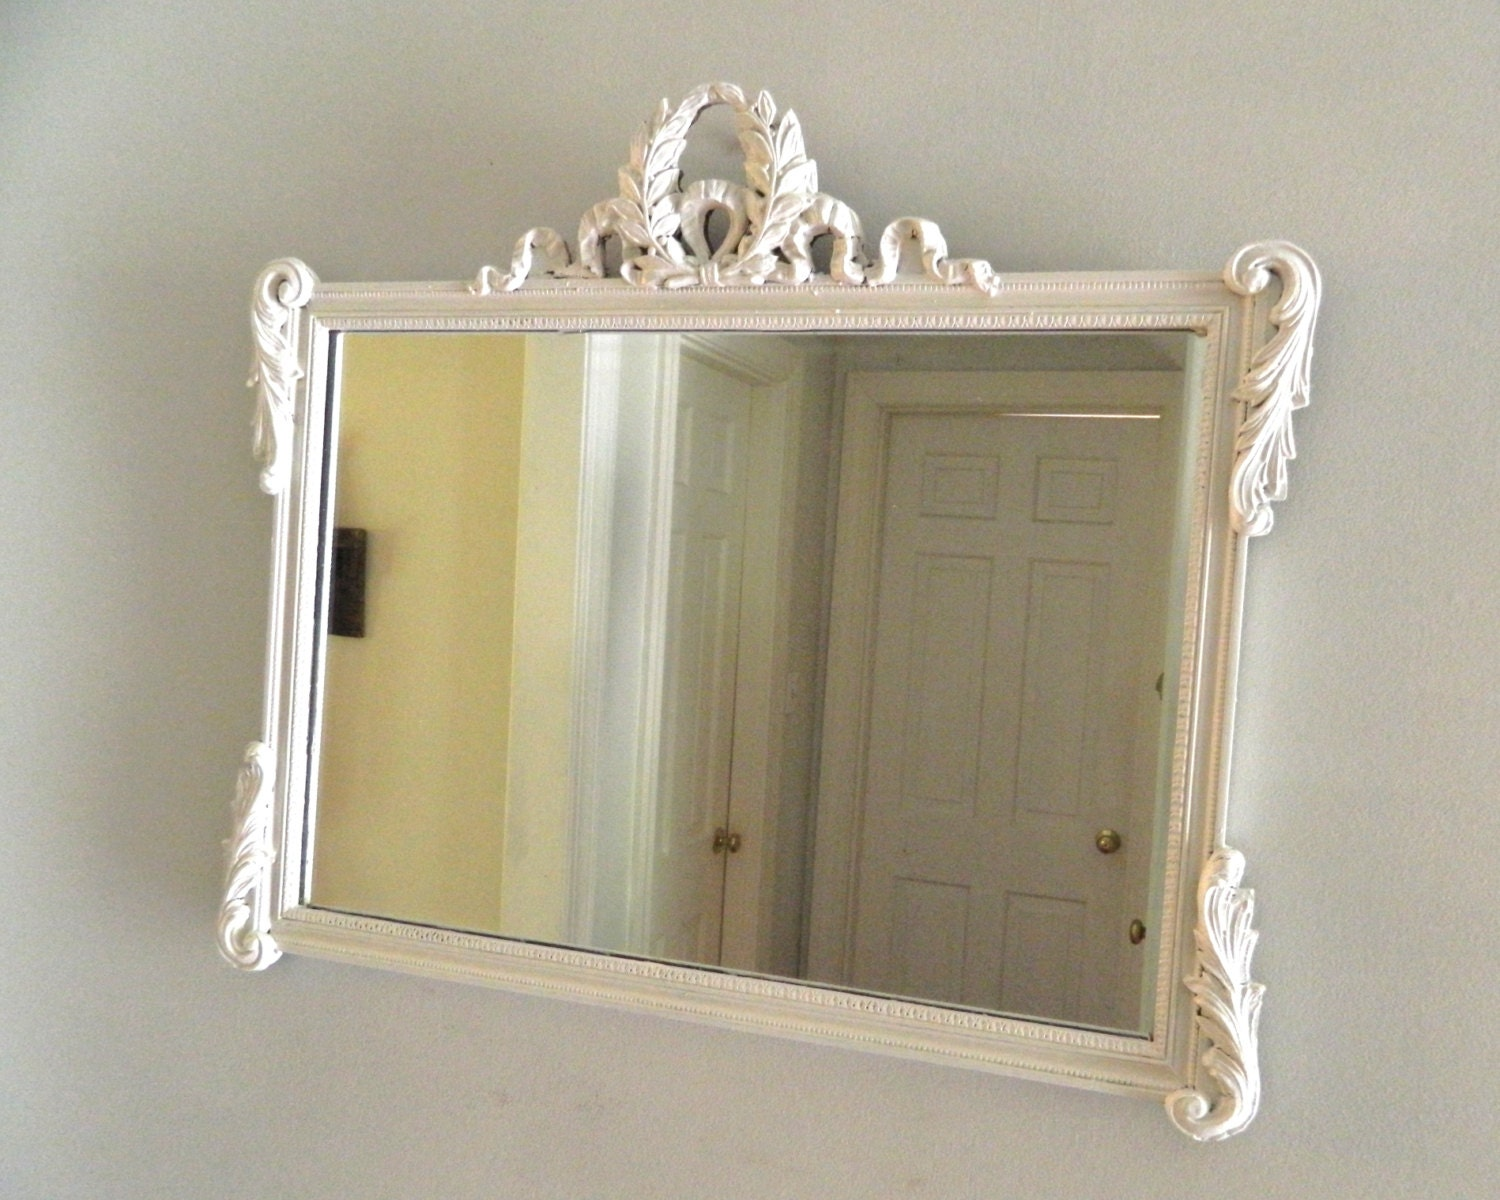 Vintage white shabby chic mirror wood frame ornate large for Large white mirror